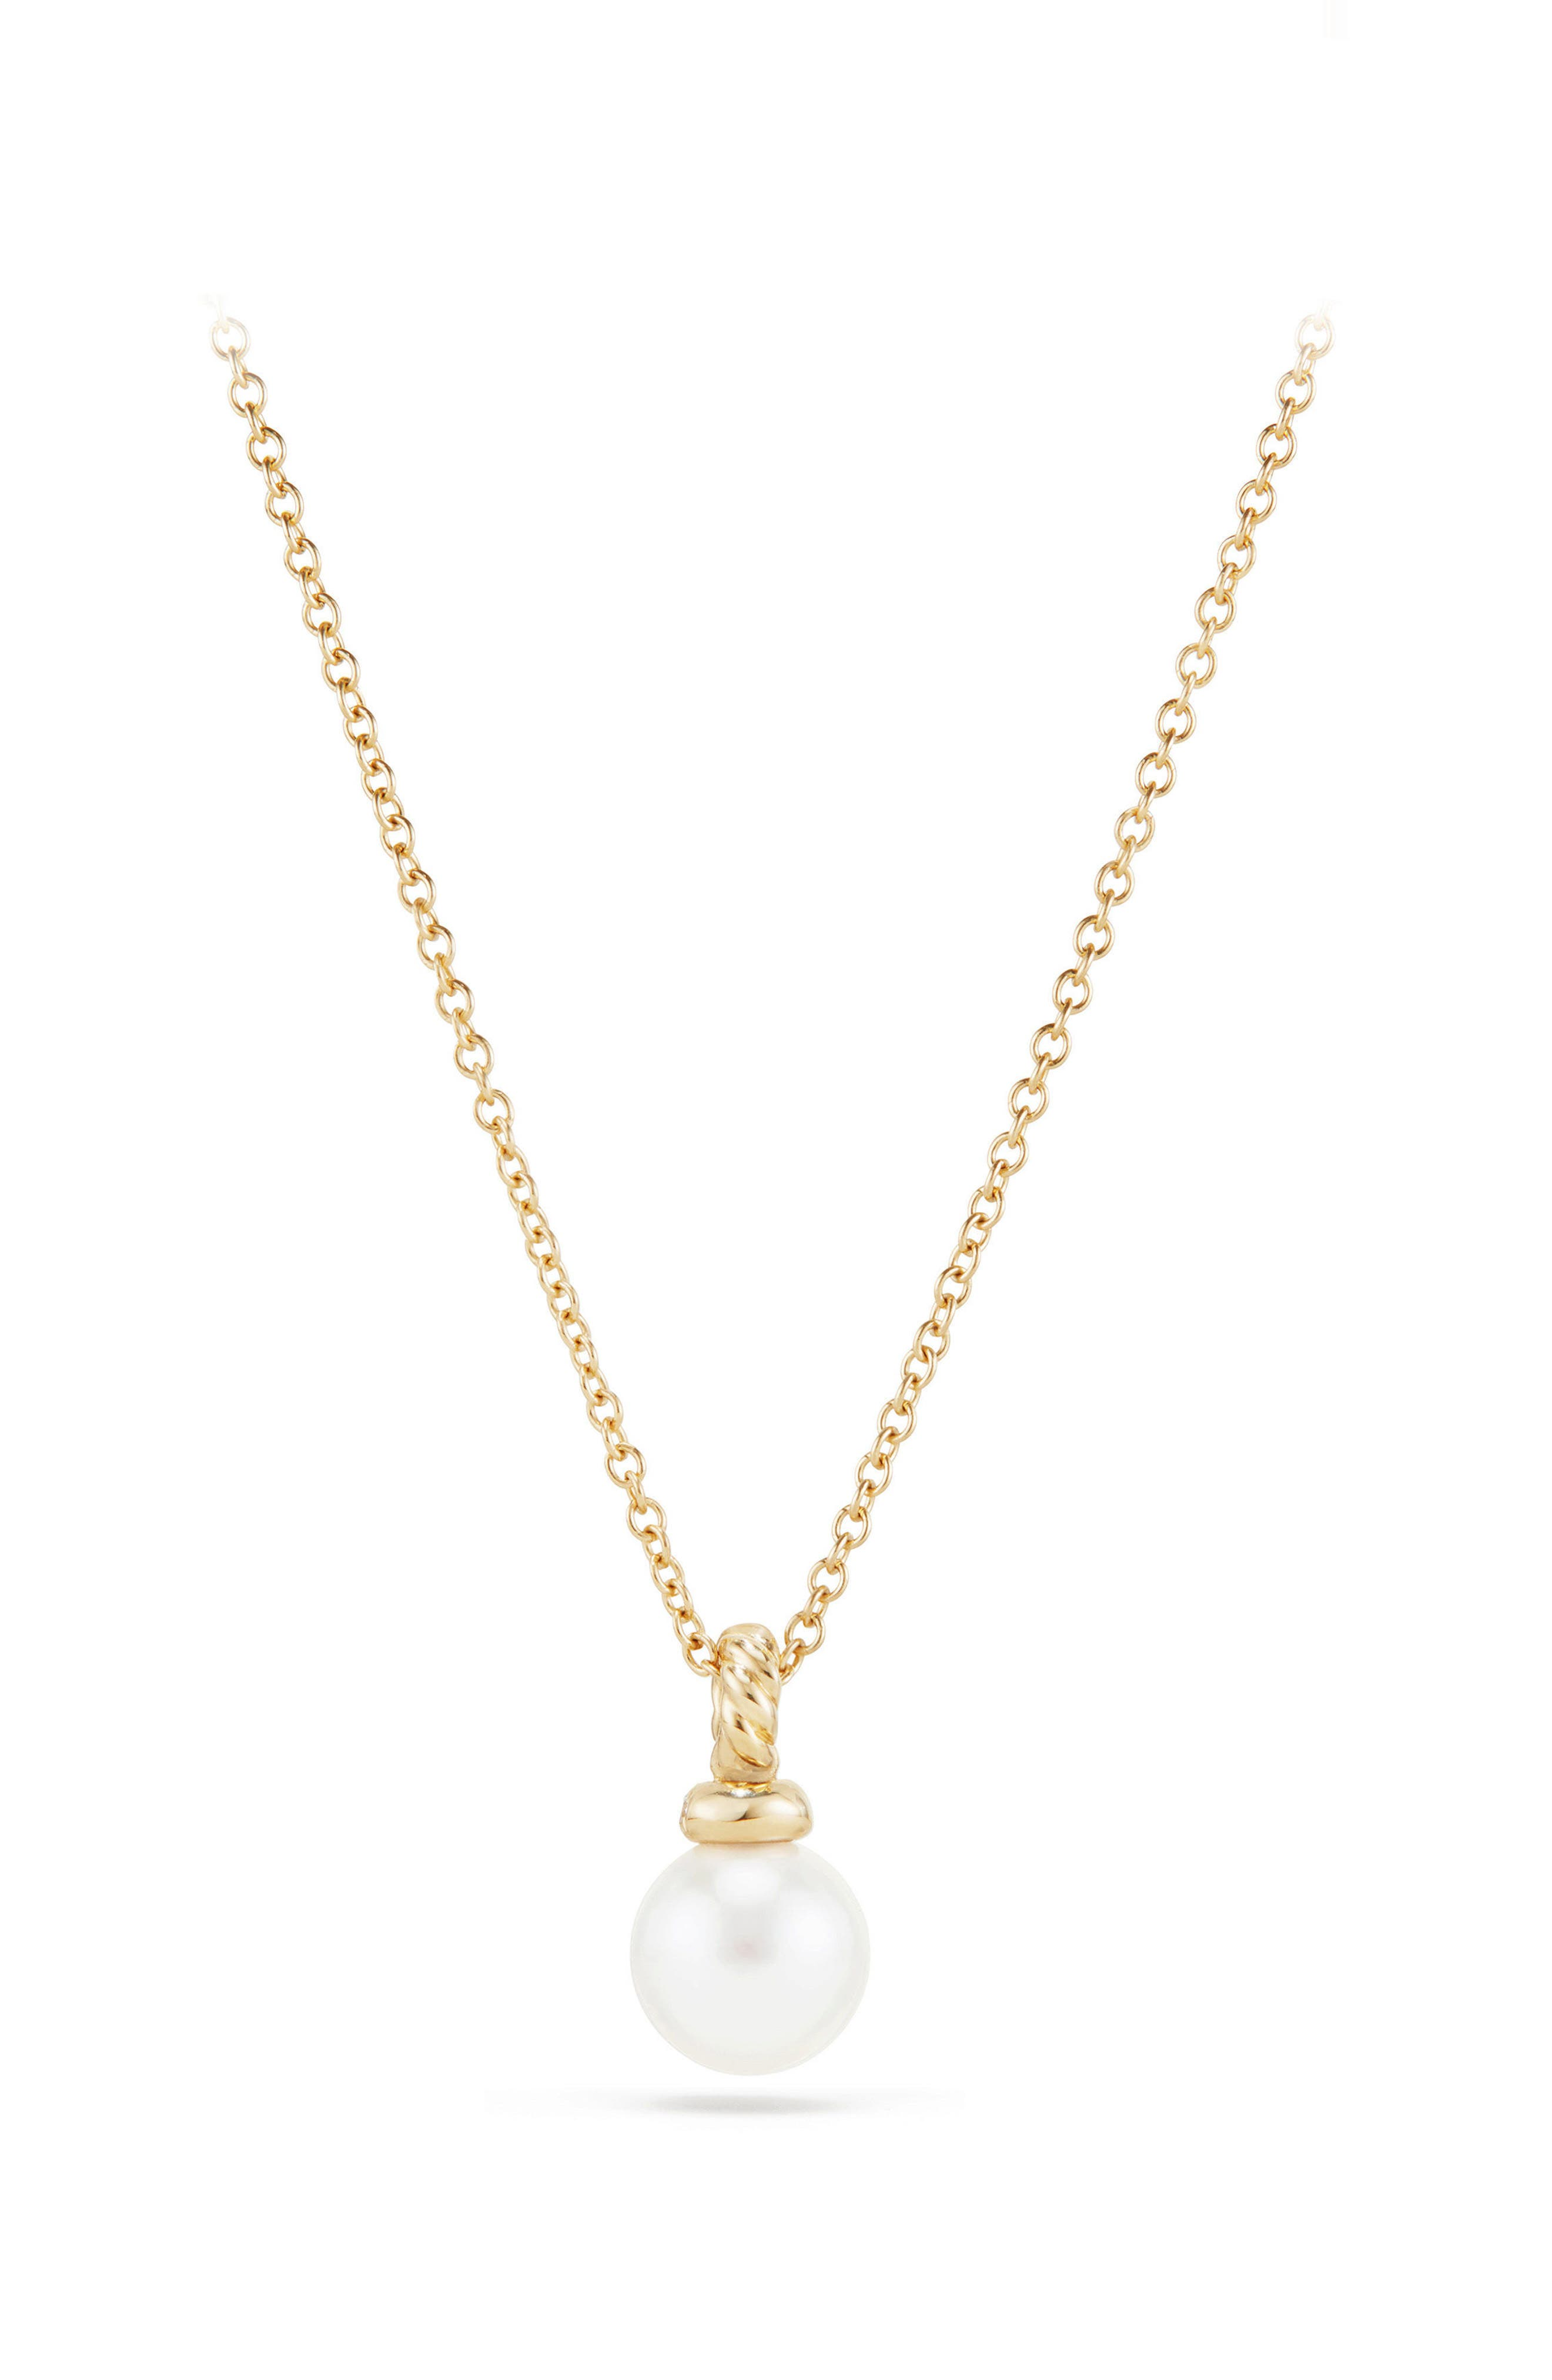 Solari Pendant Necklace with Pearl & Diamonds in 18K Gold,                             Alternate thumbnail 2, color,                             Yellow Gold/ Diamond/ Pearl